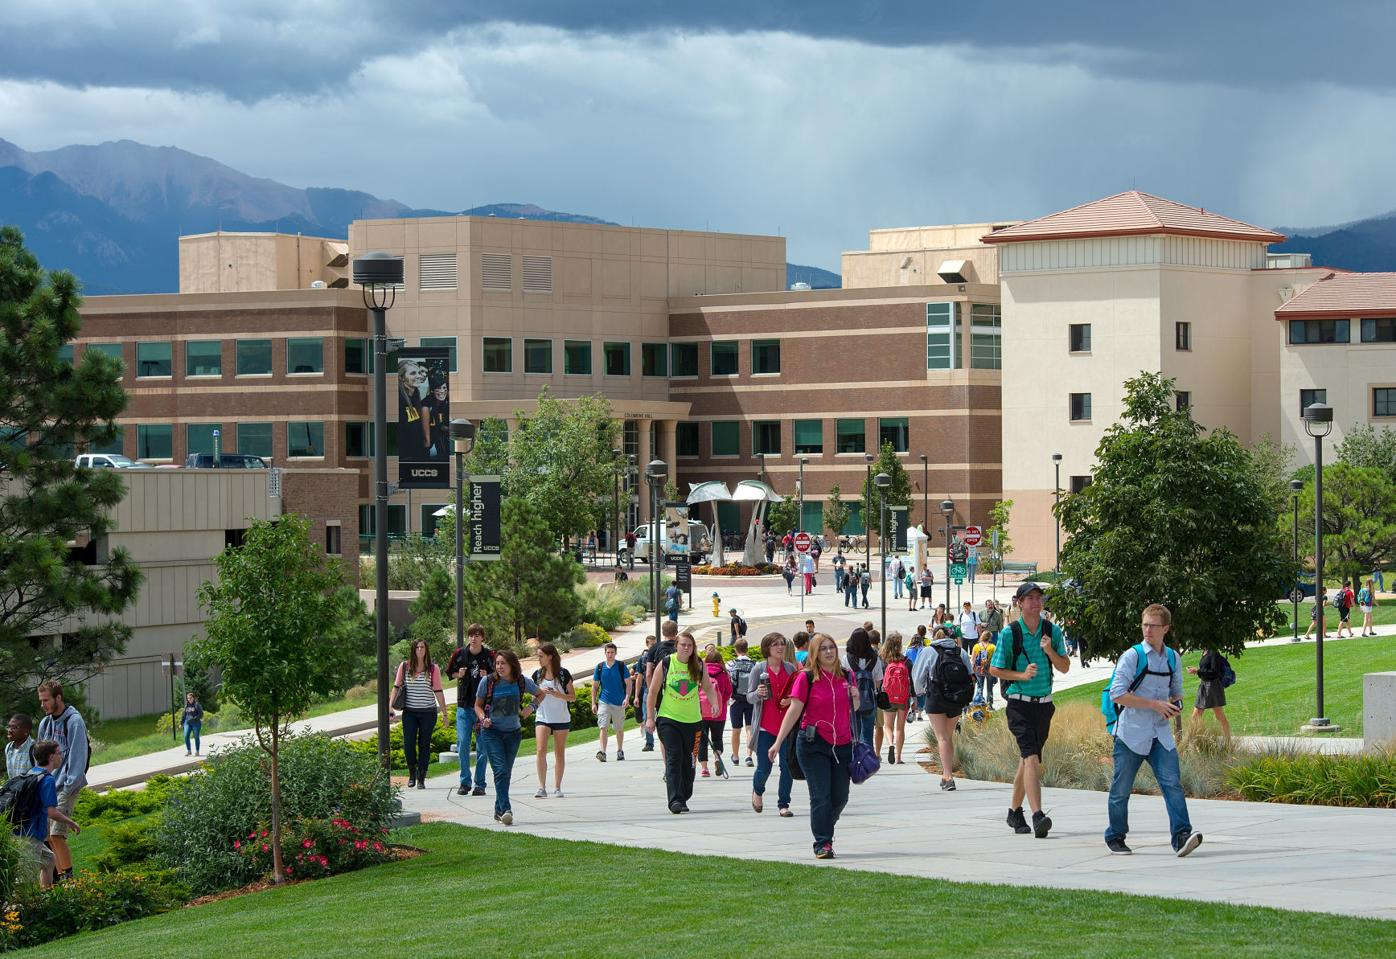 Students walk on the University of Colorado at Colorado Springs campus Thursday, Aug. 28, 2014 during their first week of the fall semester. Enrollment at the Colorado Springs university has increased 40 percent over the last decade to 11,199. (The Gazette, Christian Murdock)